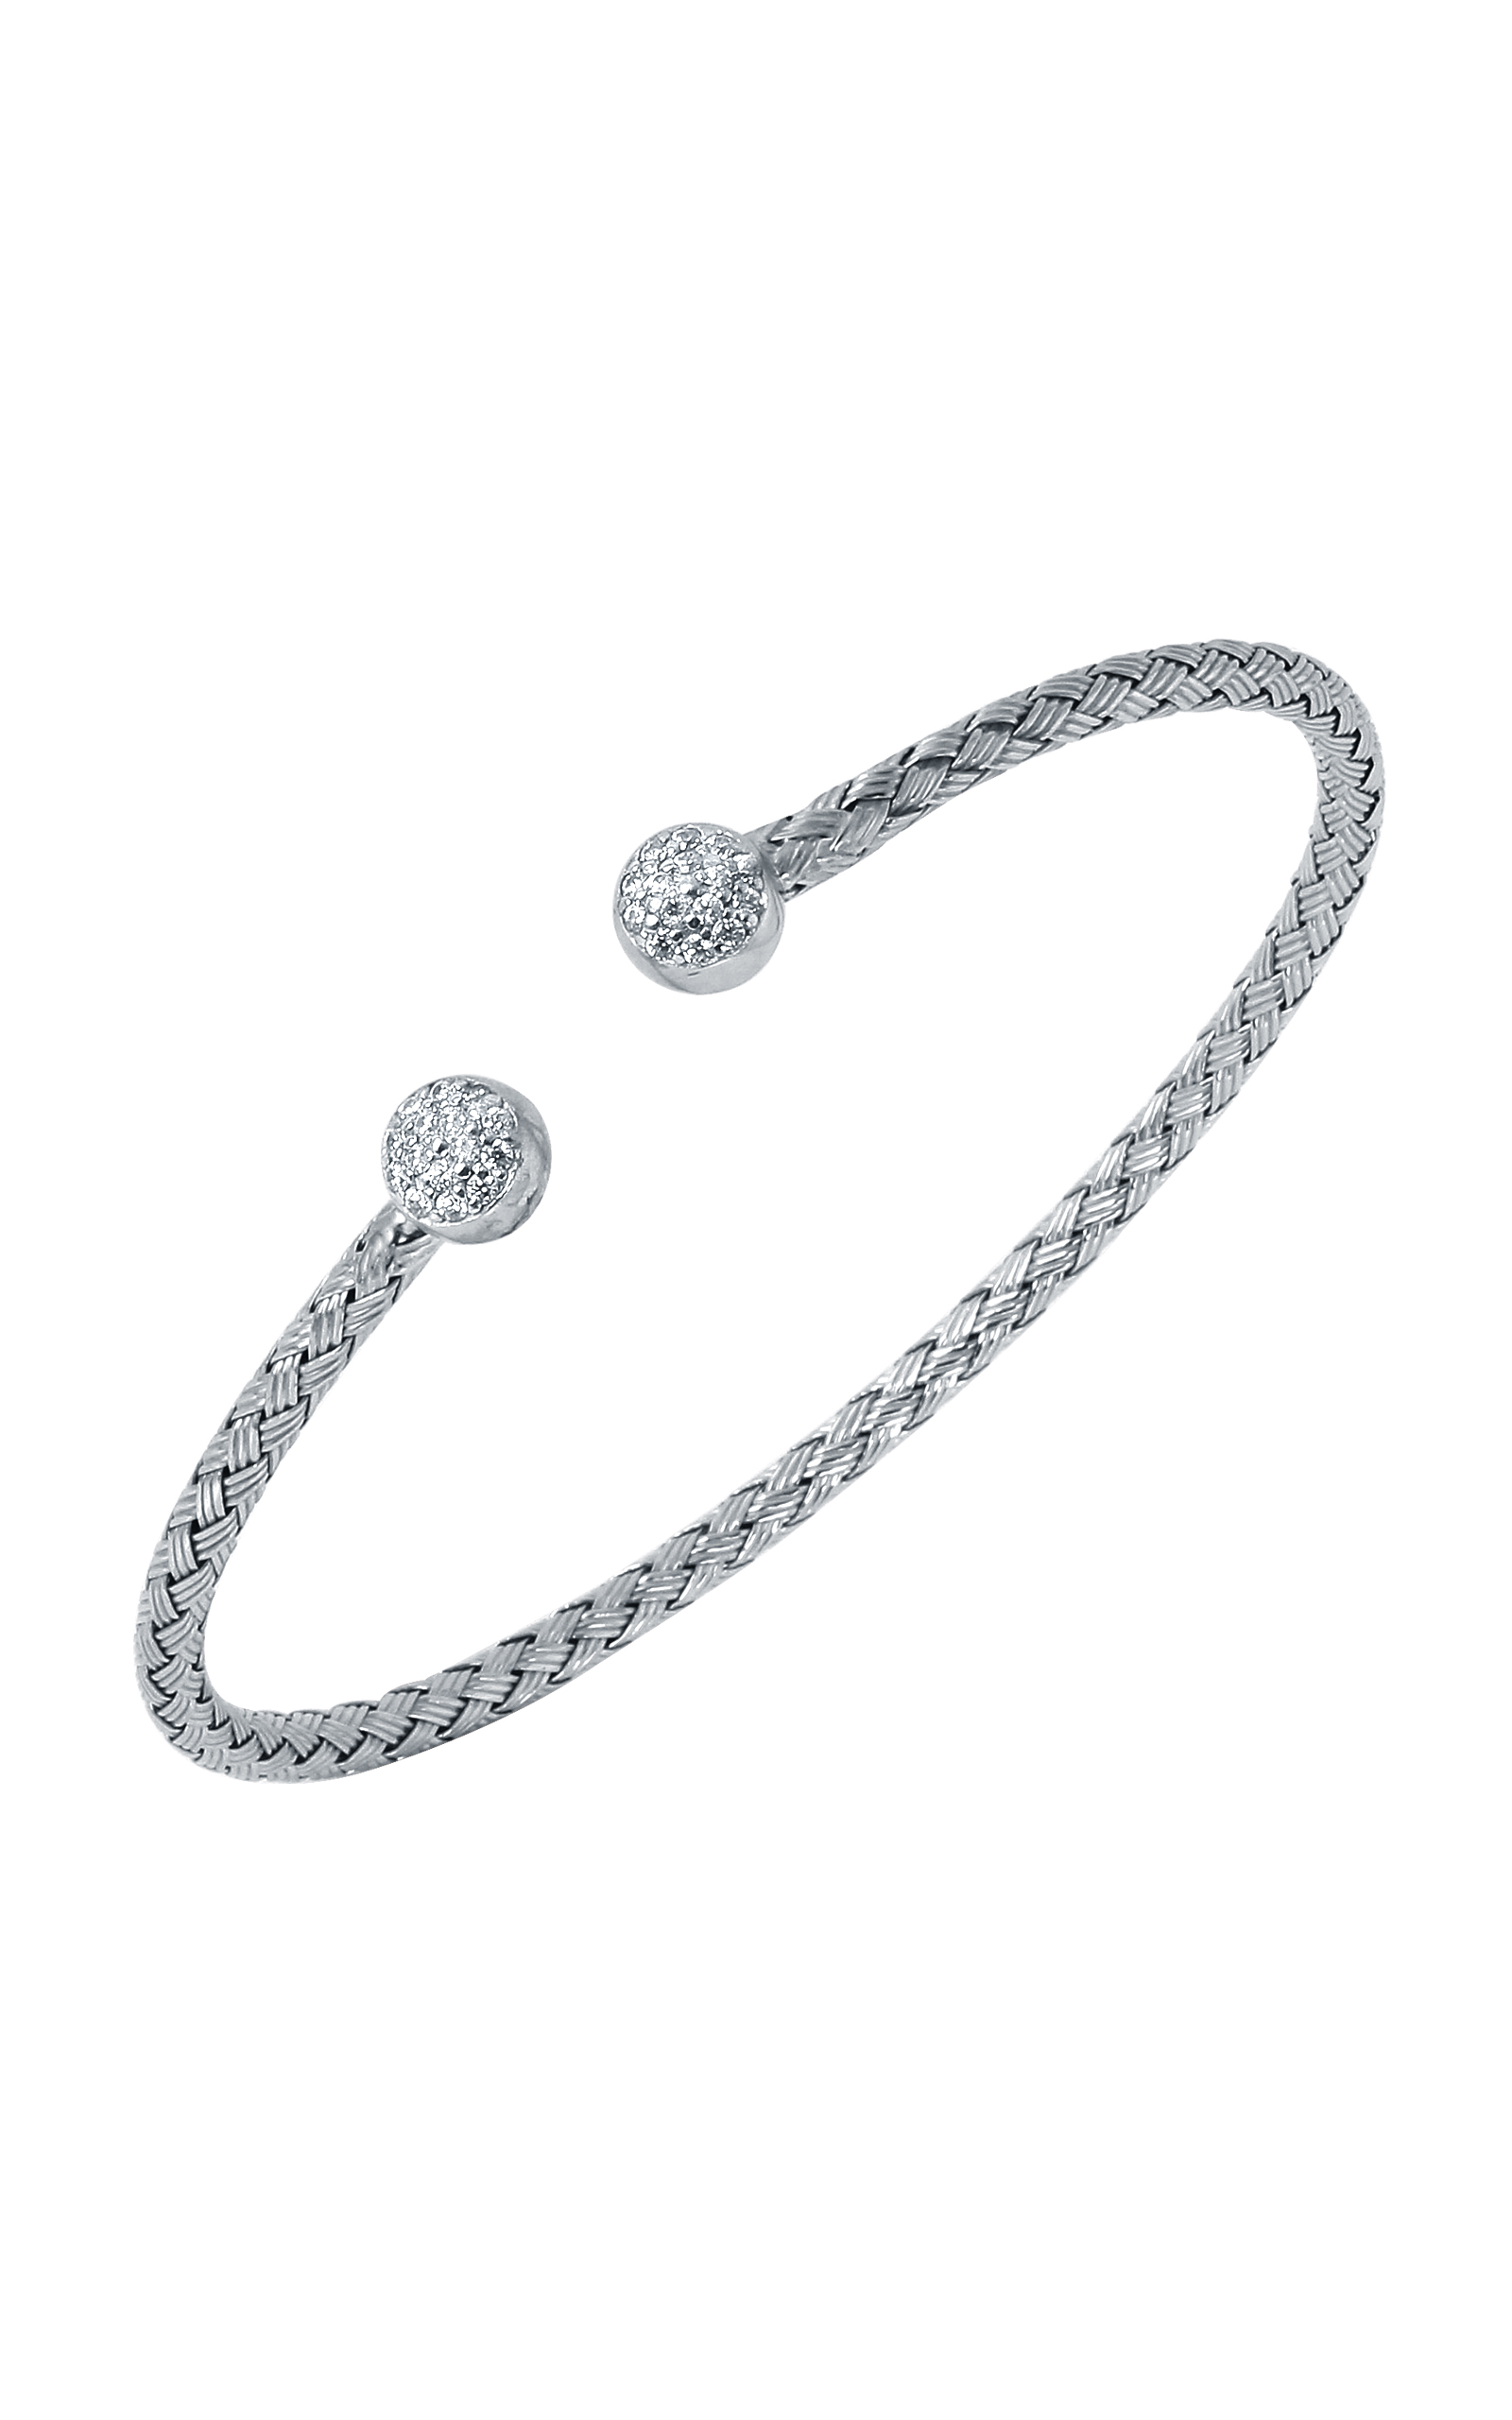 Charles Garnier Bracelet Paolo Collection MLC8205WZ product image